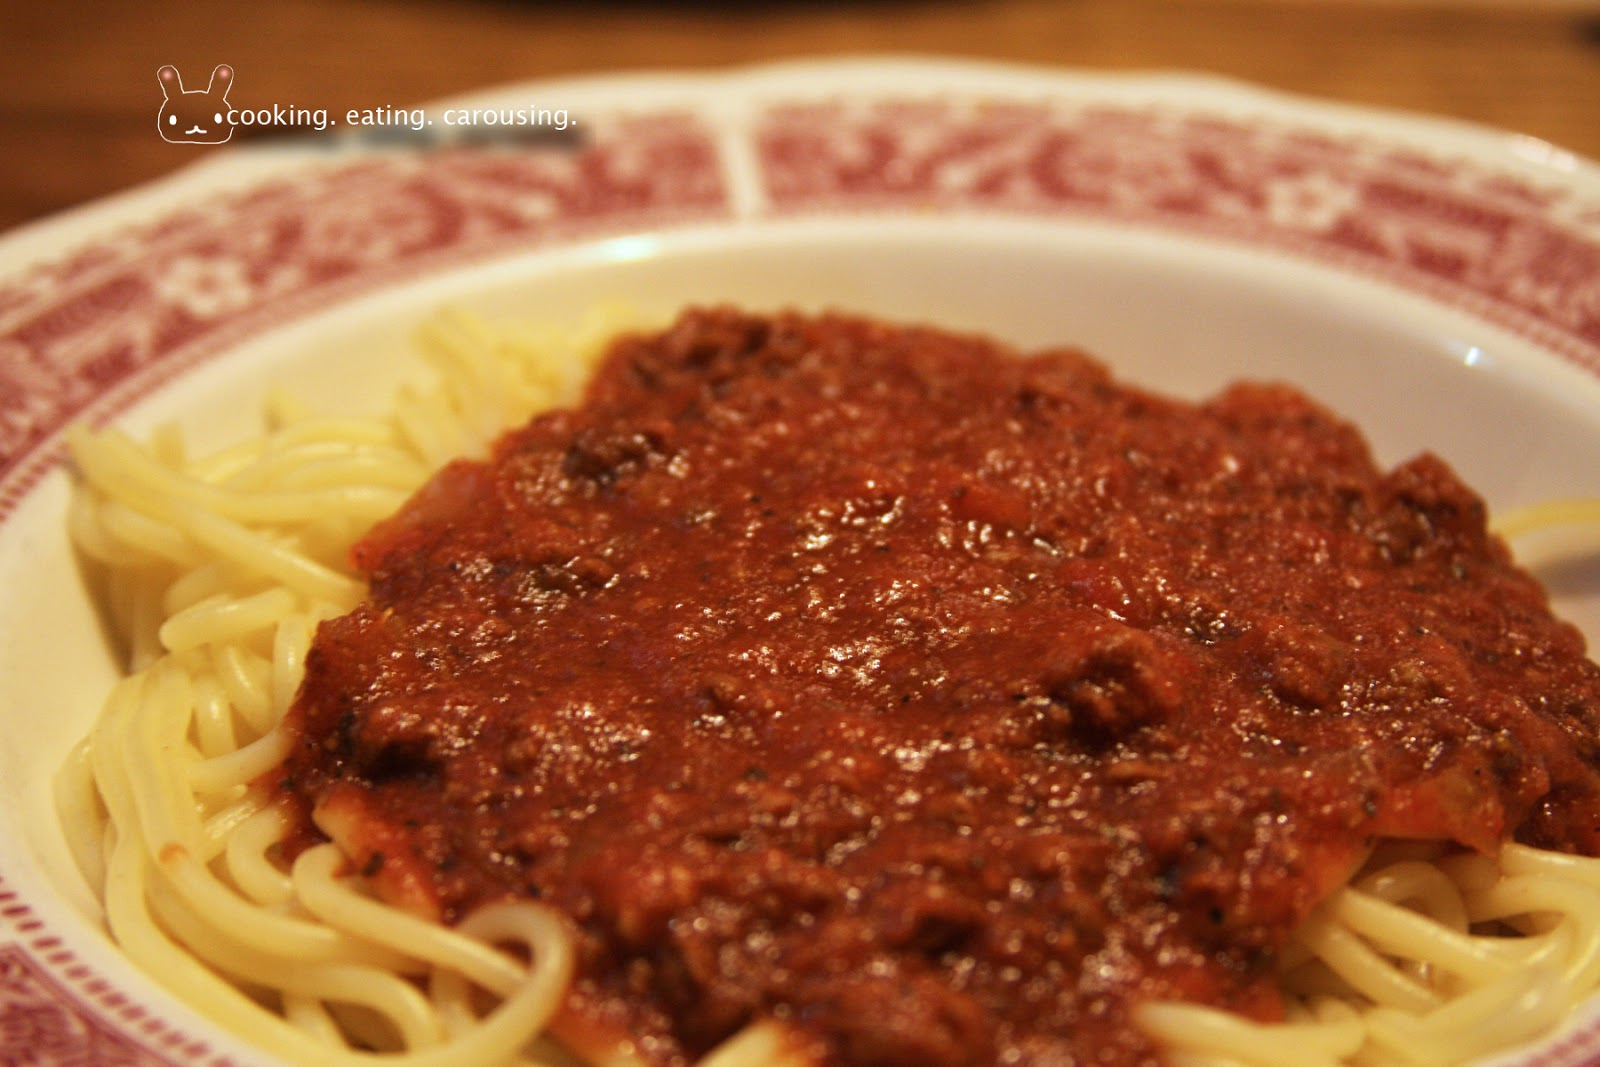 old-spaghetti-factory-6-spaghetti-with-meat-sauce.jpg